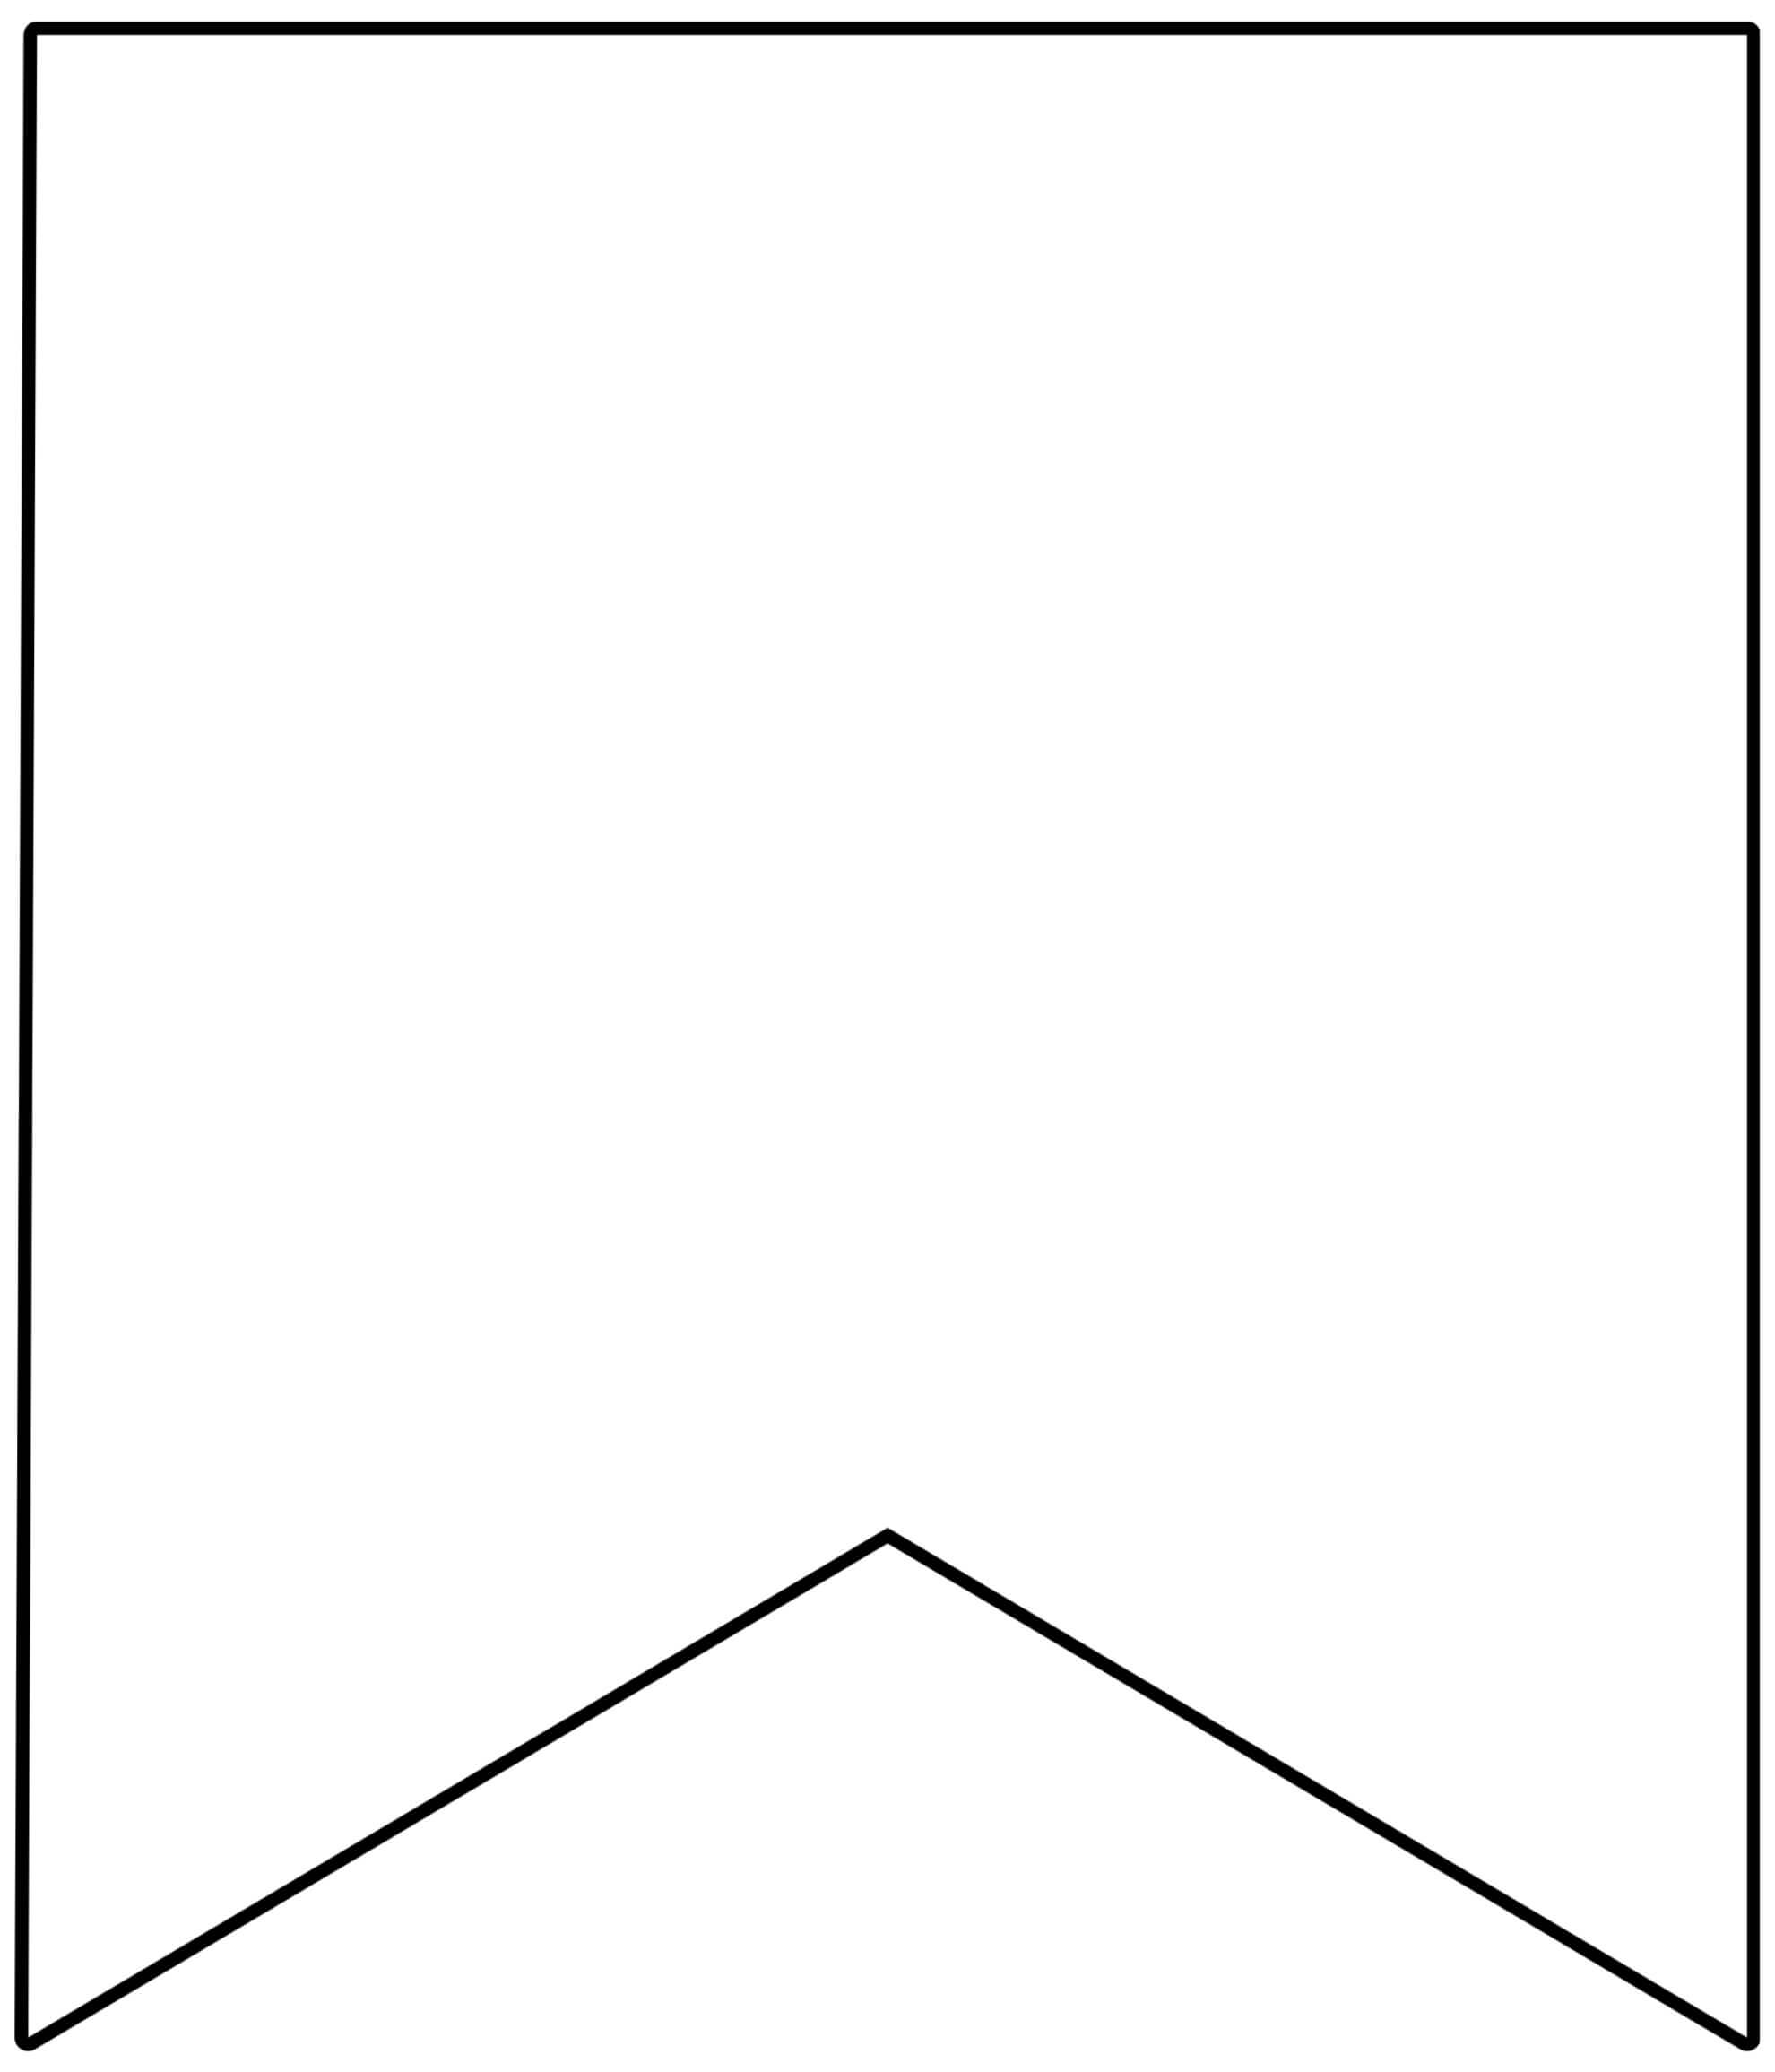 Free Printable Banner Templates {Blank Banners} - Paper With Regard To Triangle Pennant Banner Template